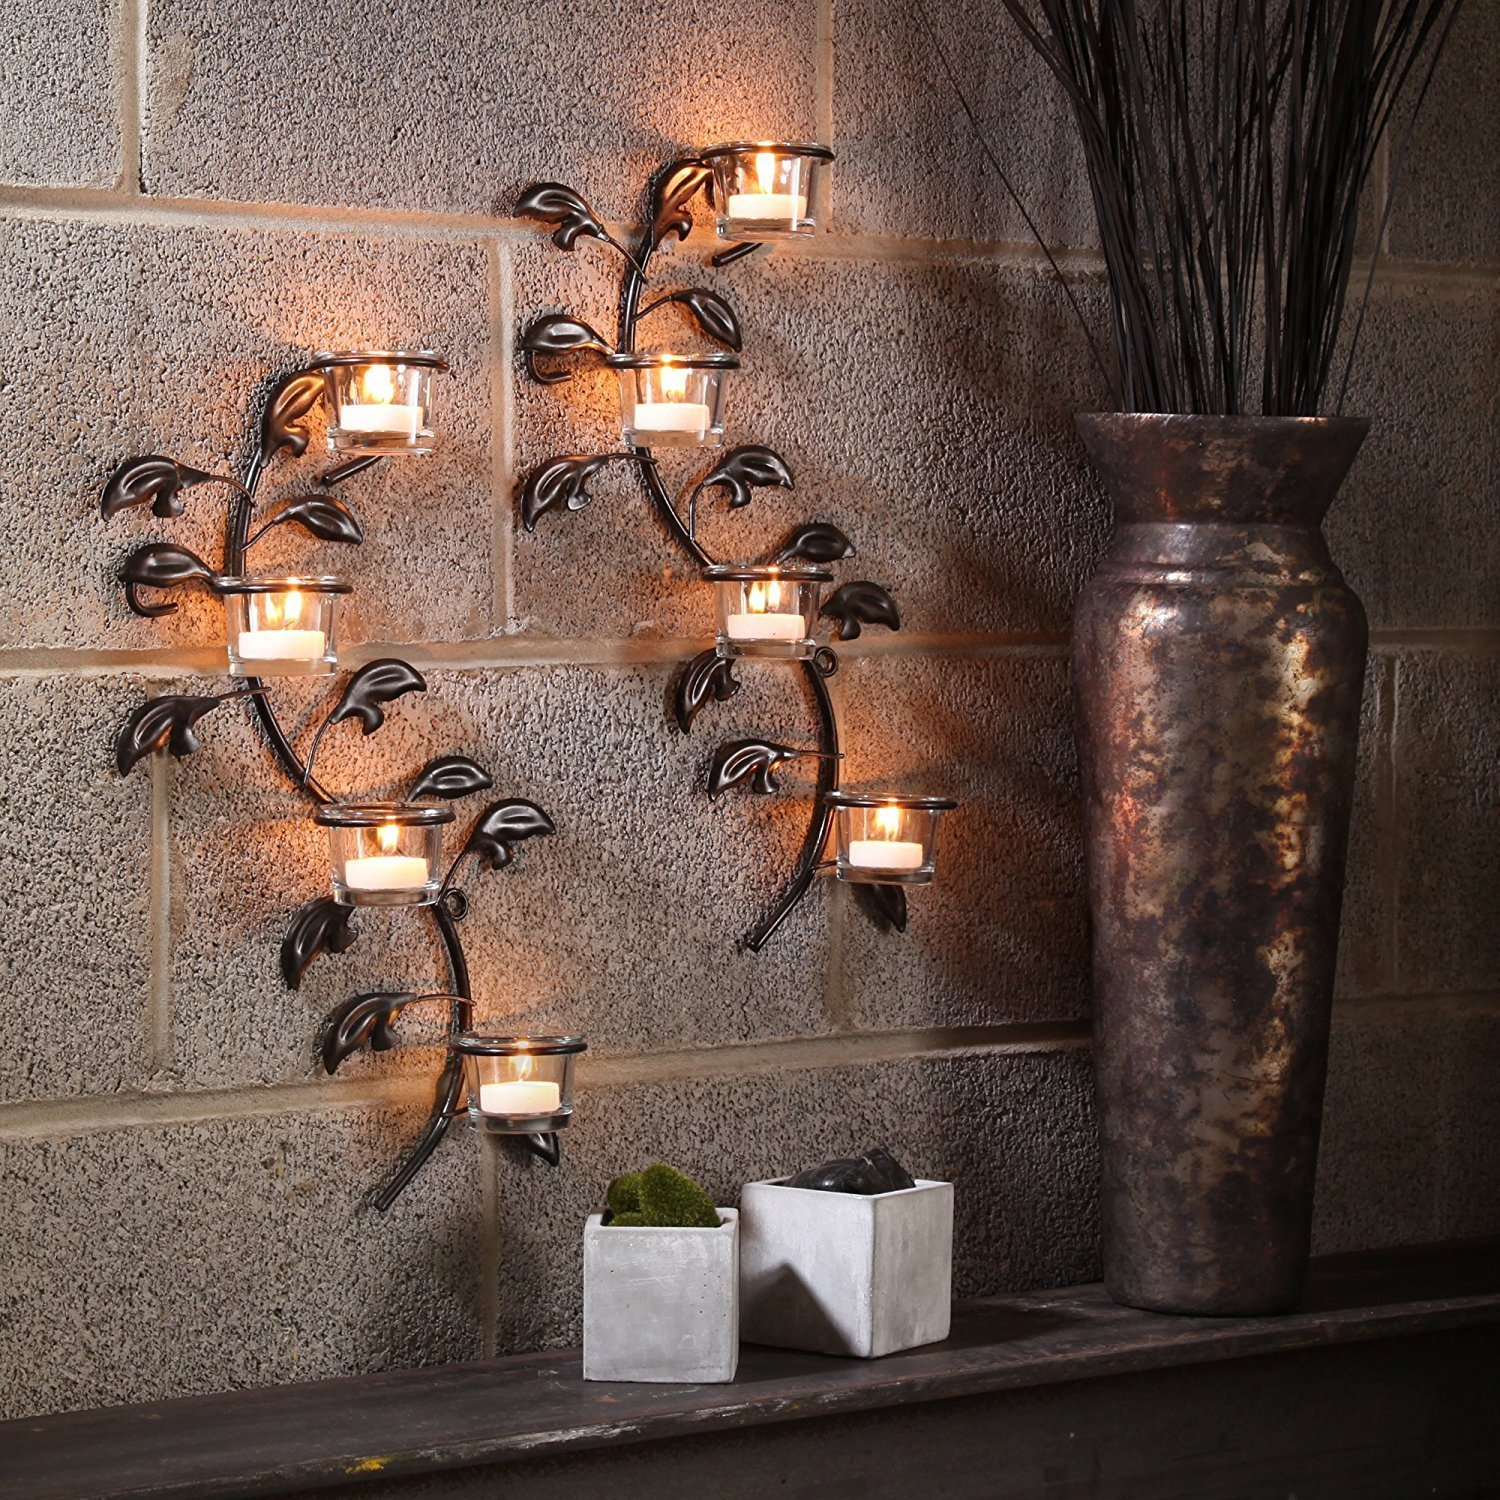 Hashcart Decorative Votive Tealight Metal Accents Wall Hanging Glass Candle Holder (Set of 2), 17-Inch